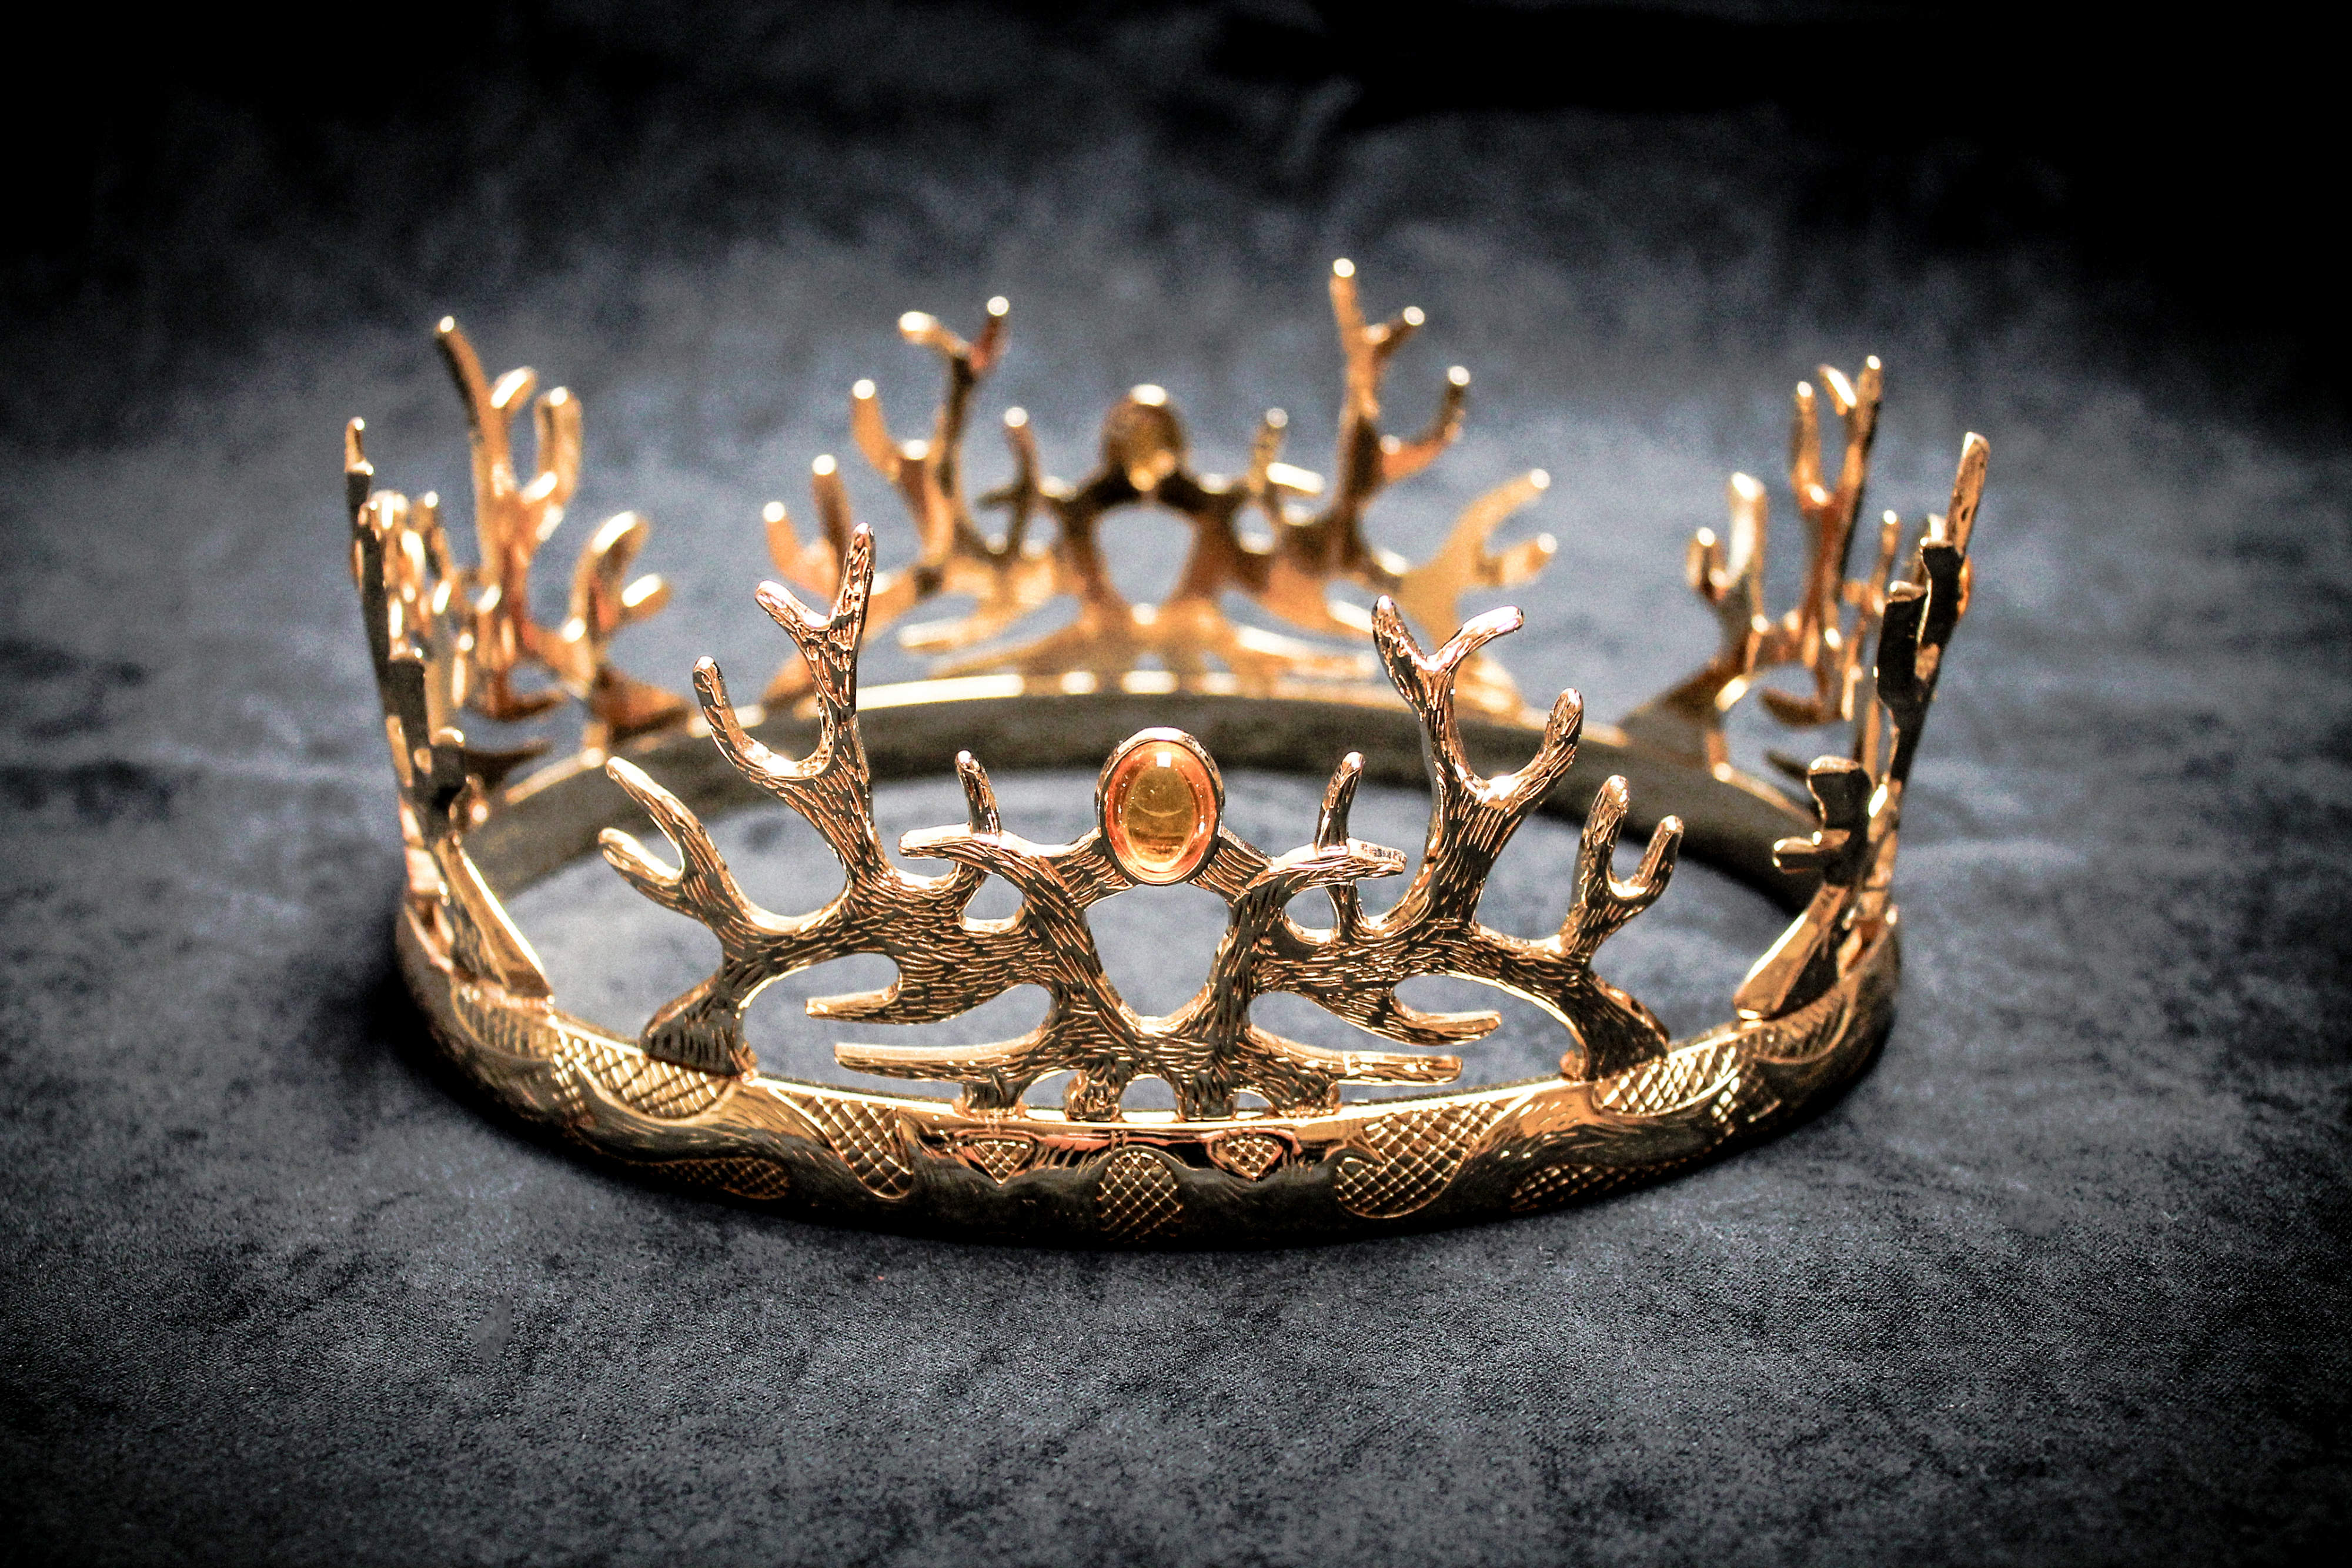 Gagnez la couronne de Joffrey de Game of Thrones